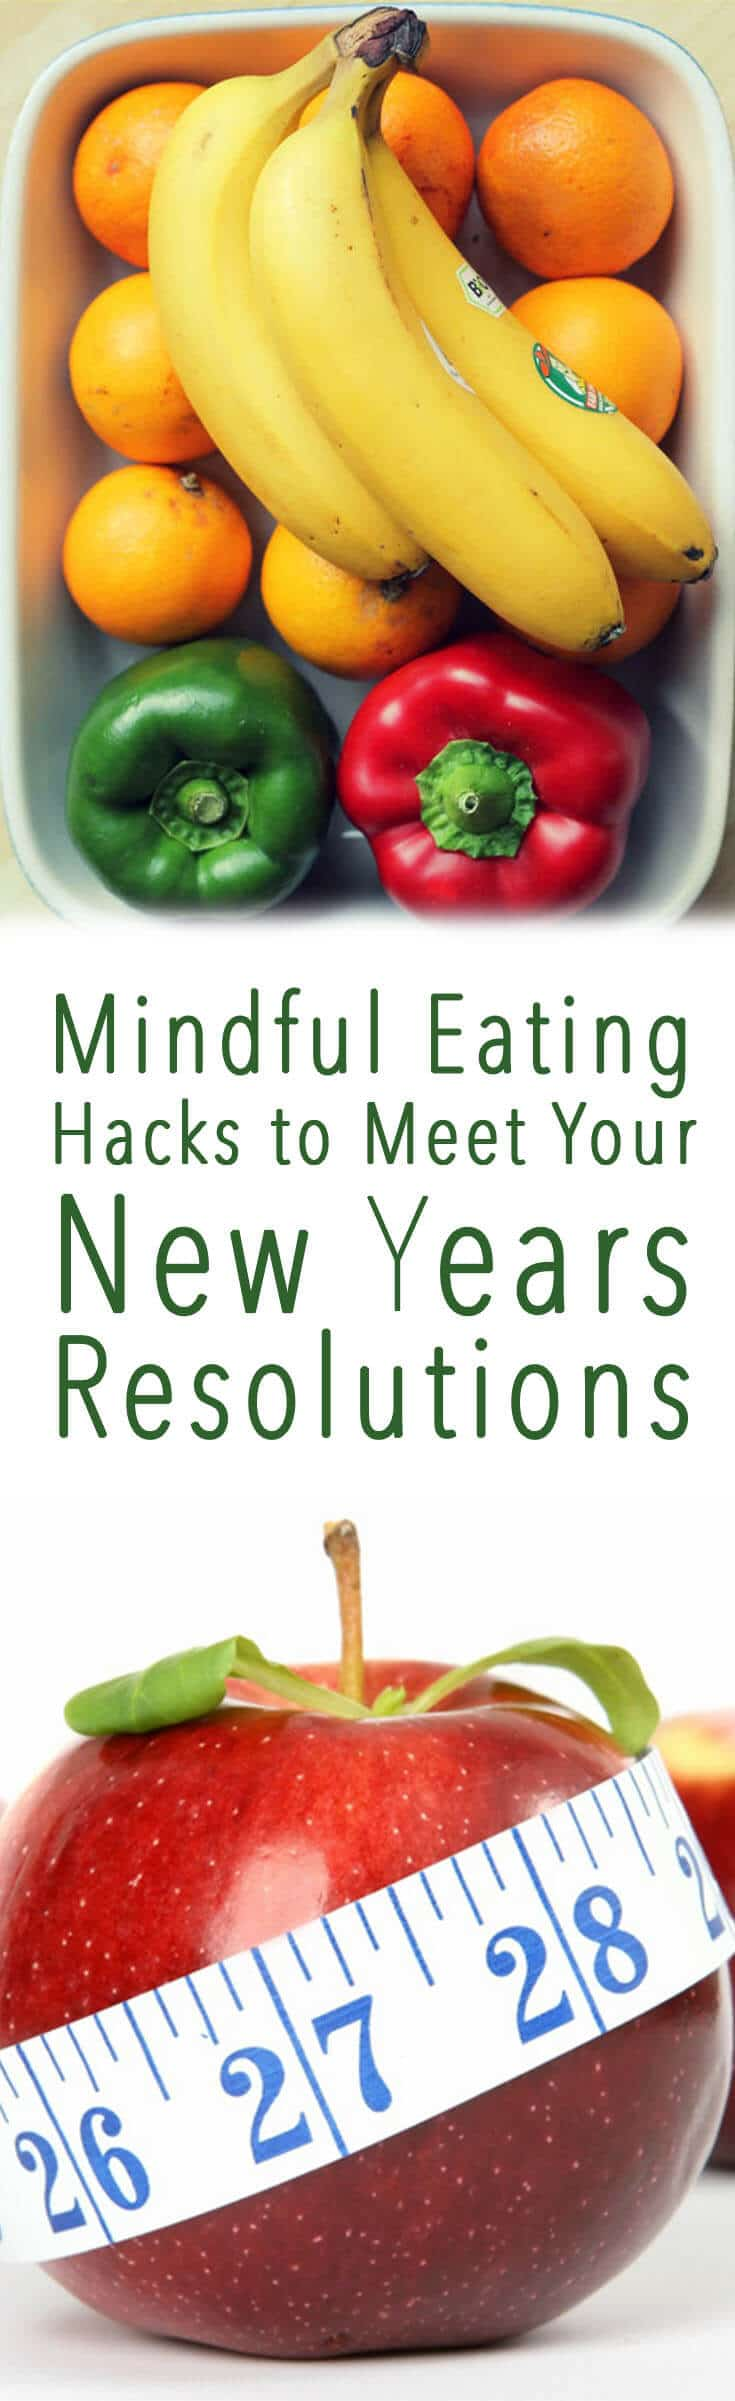 I've got FIVE TIPS to help you become a more mindful eater and reach your Ne Year's Resolutions.